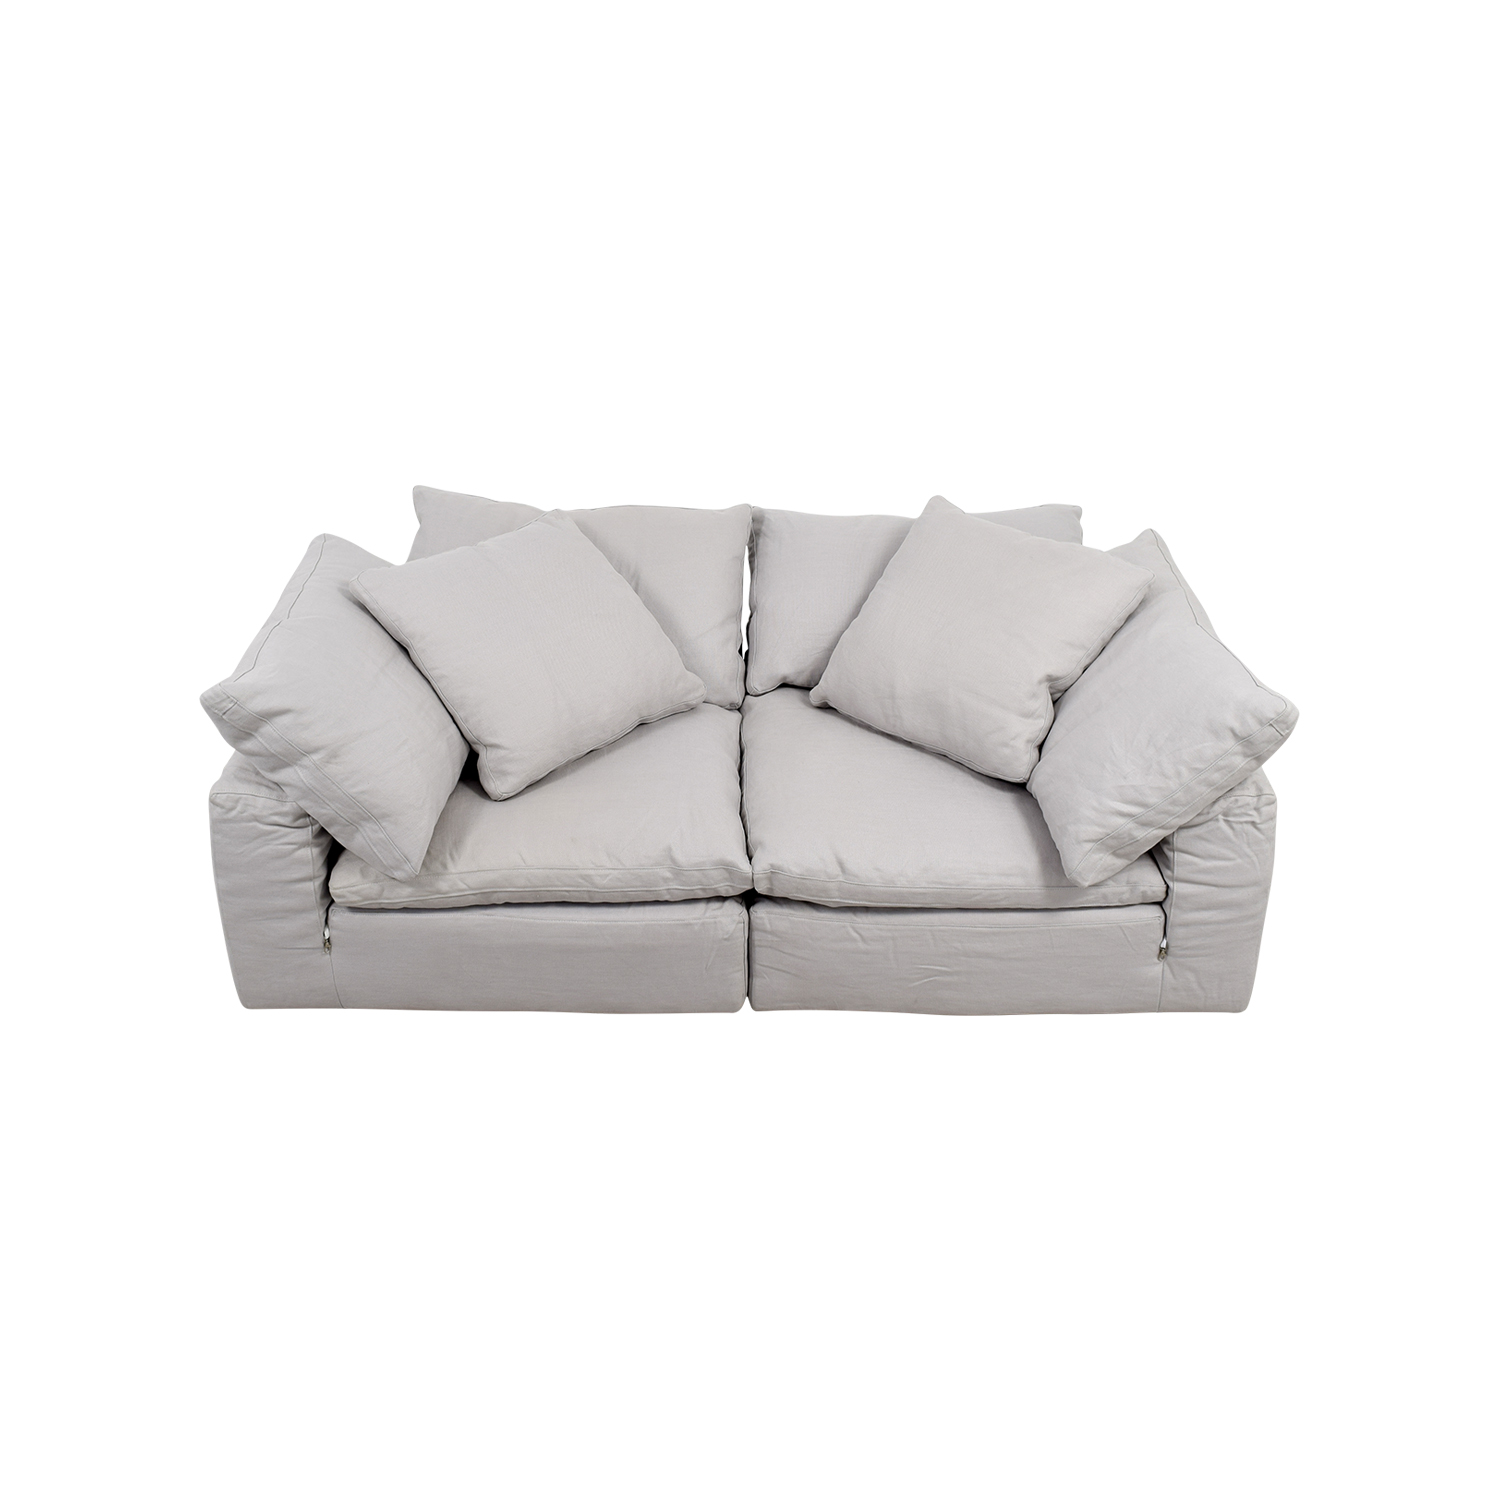 Restoration Hardware Restoration Hardware The Cloud White Sofa nyc